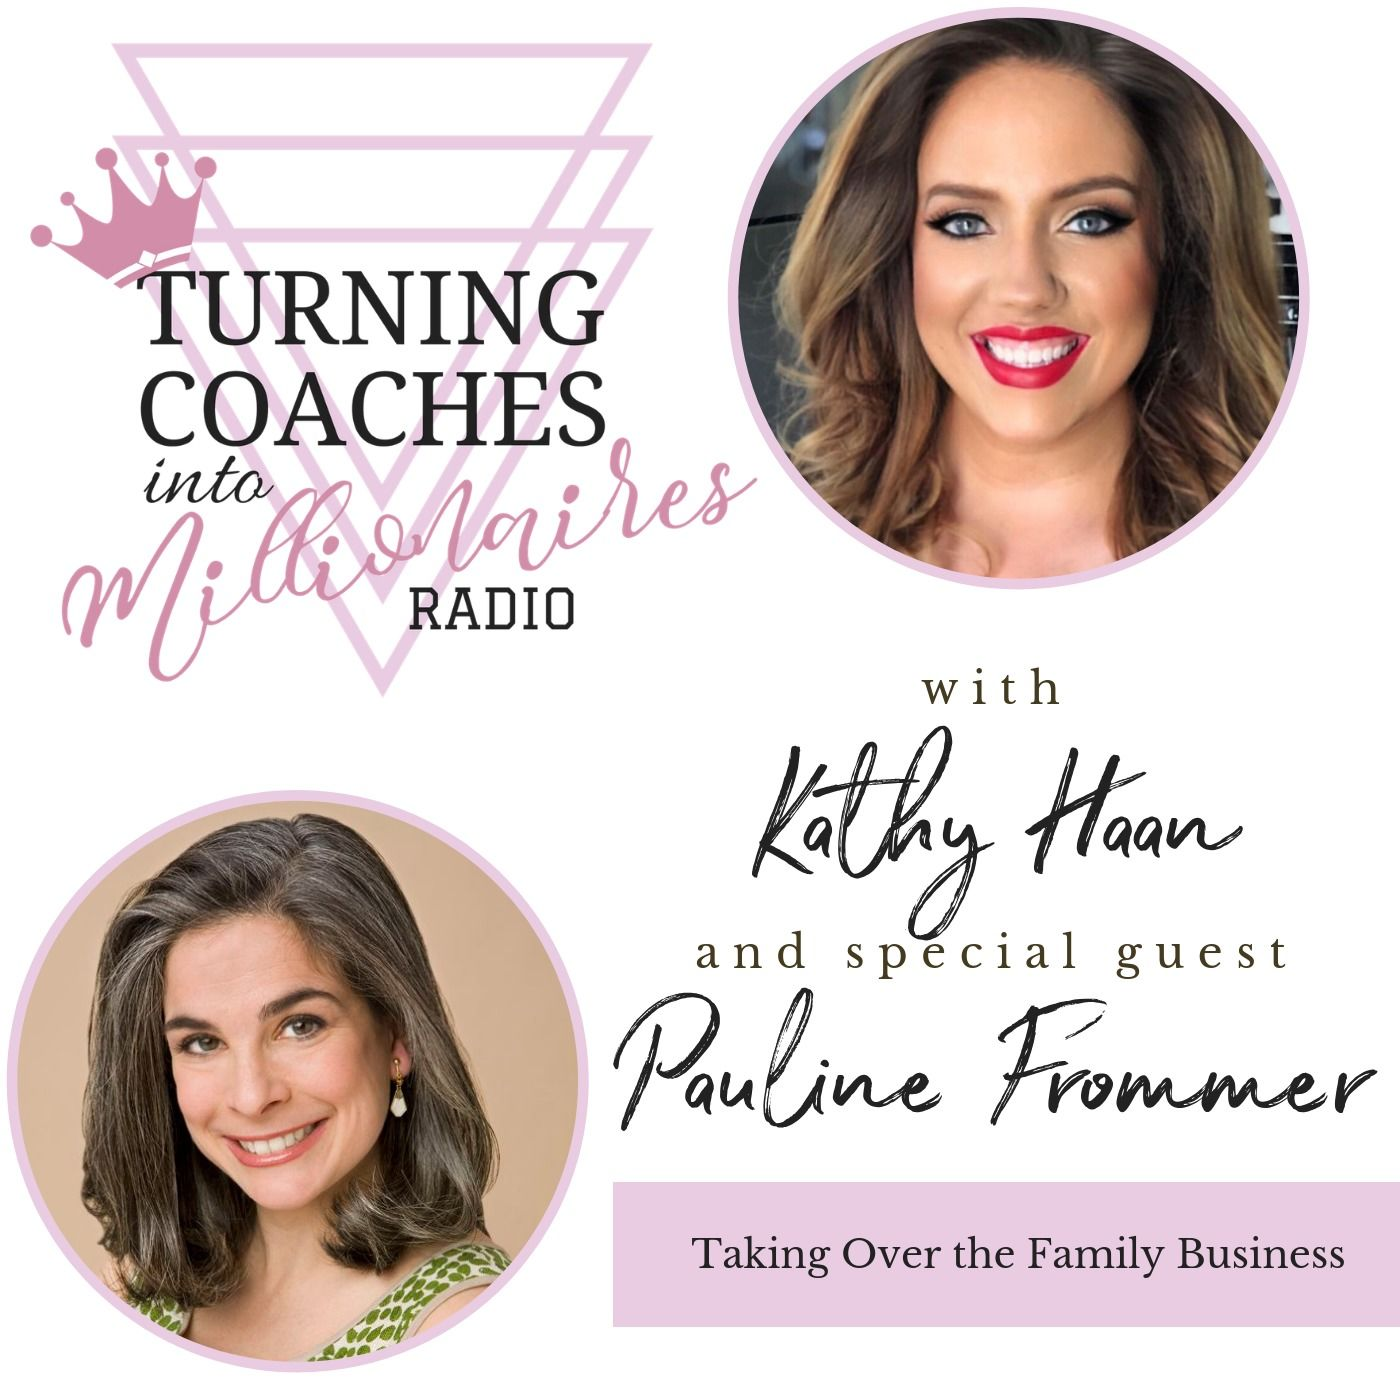 Taking Over the Family Business with Pauline Frommer